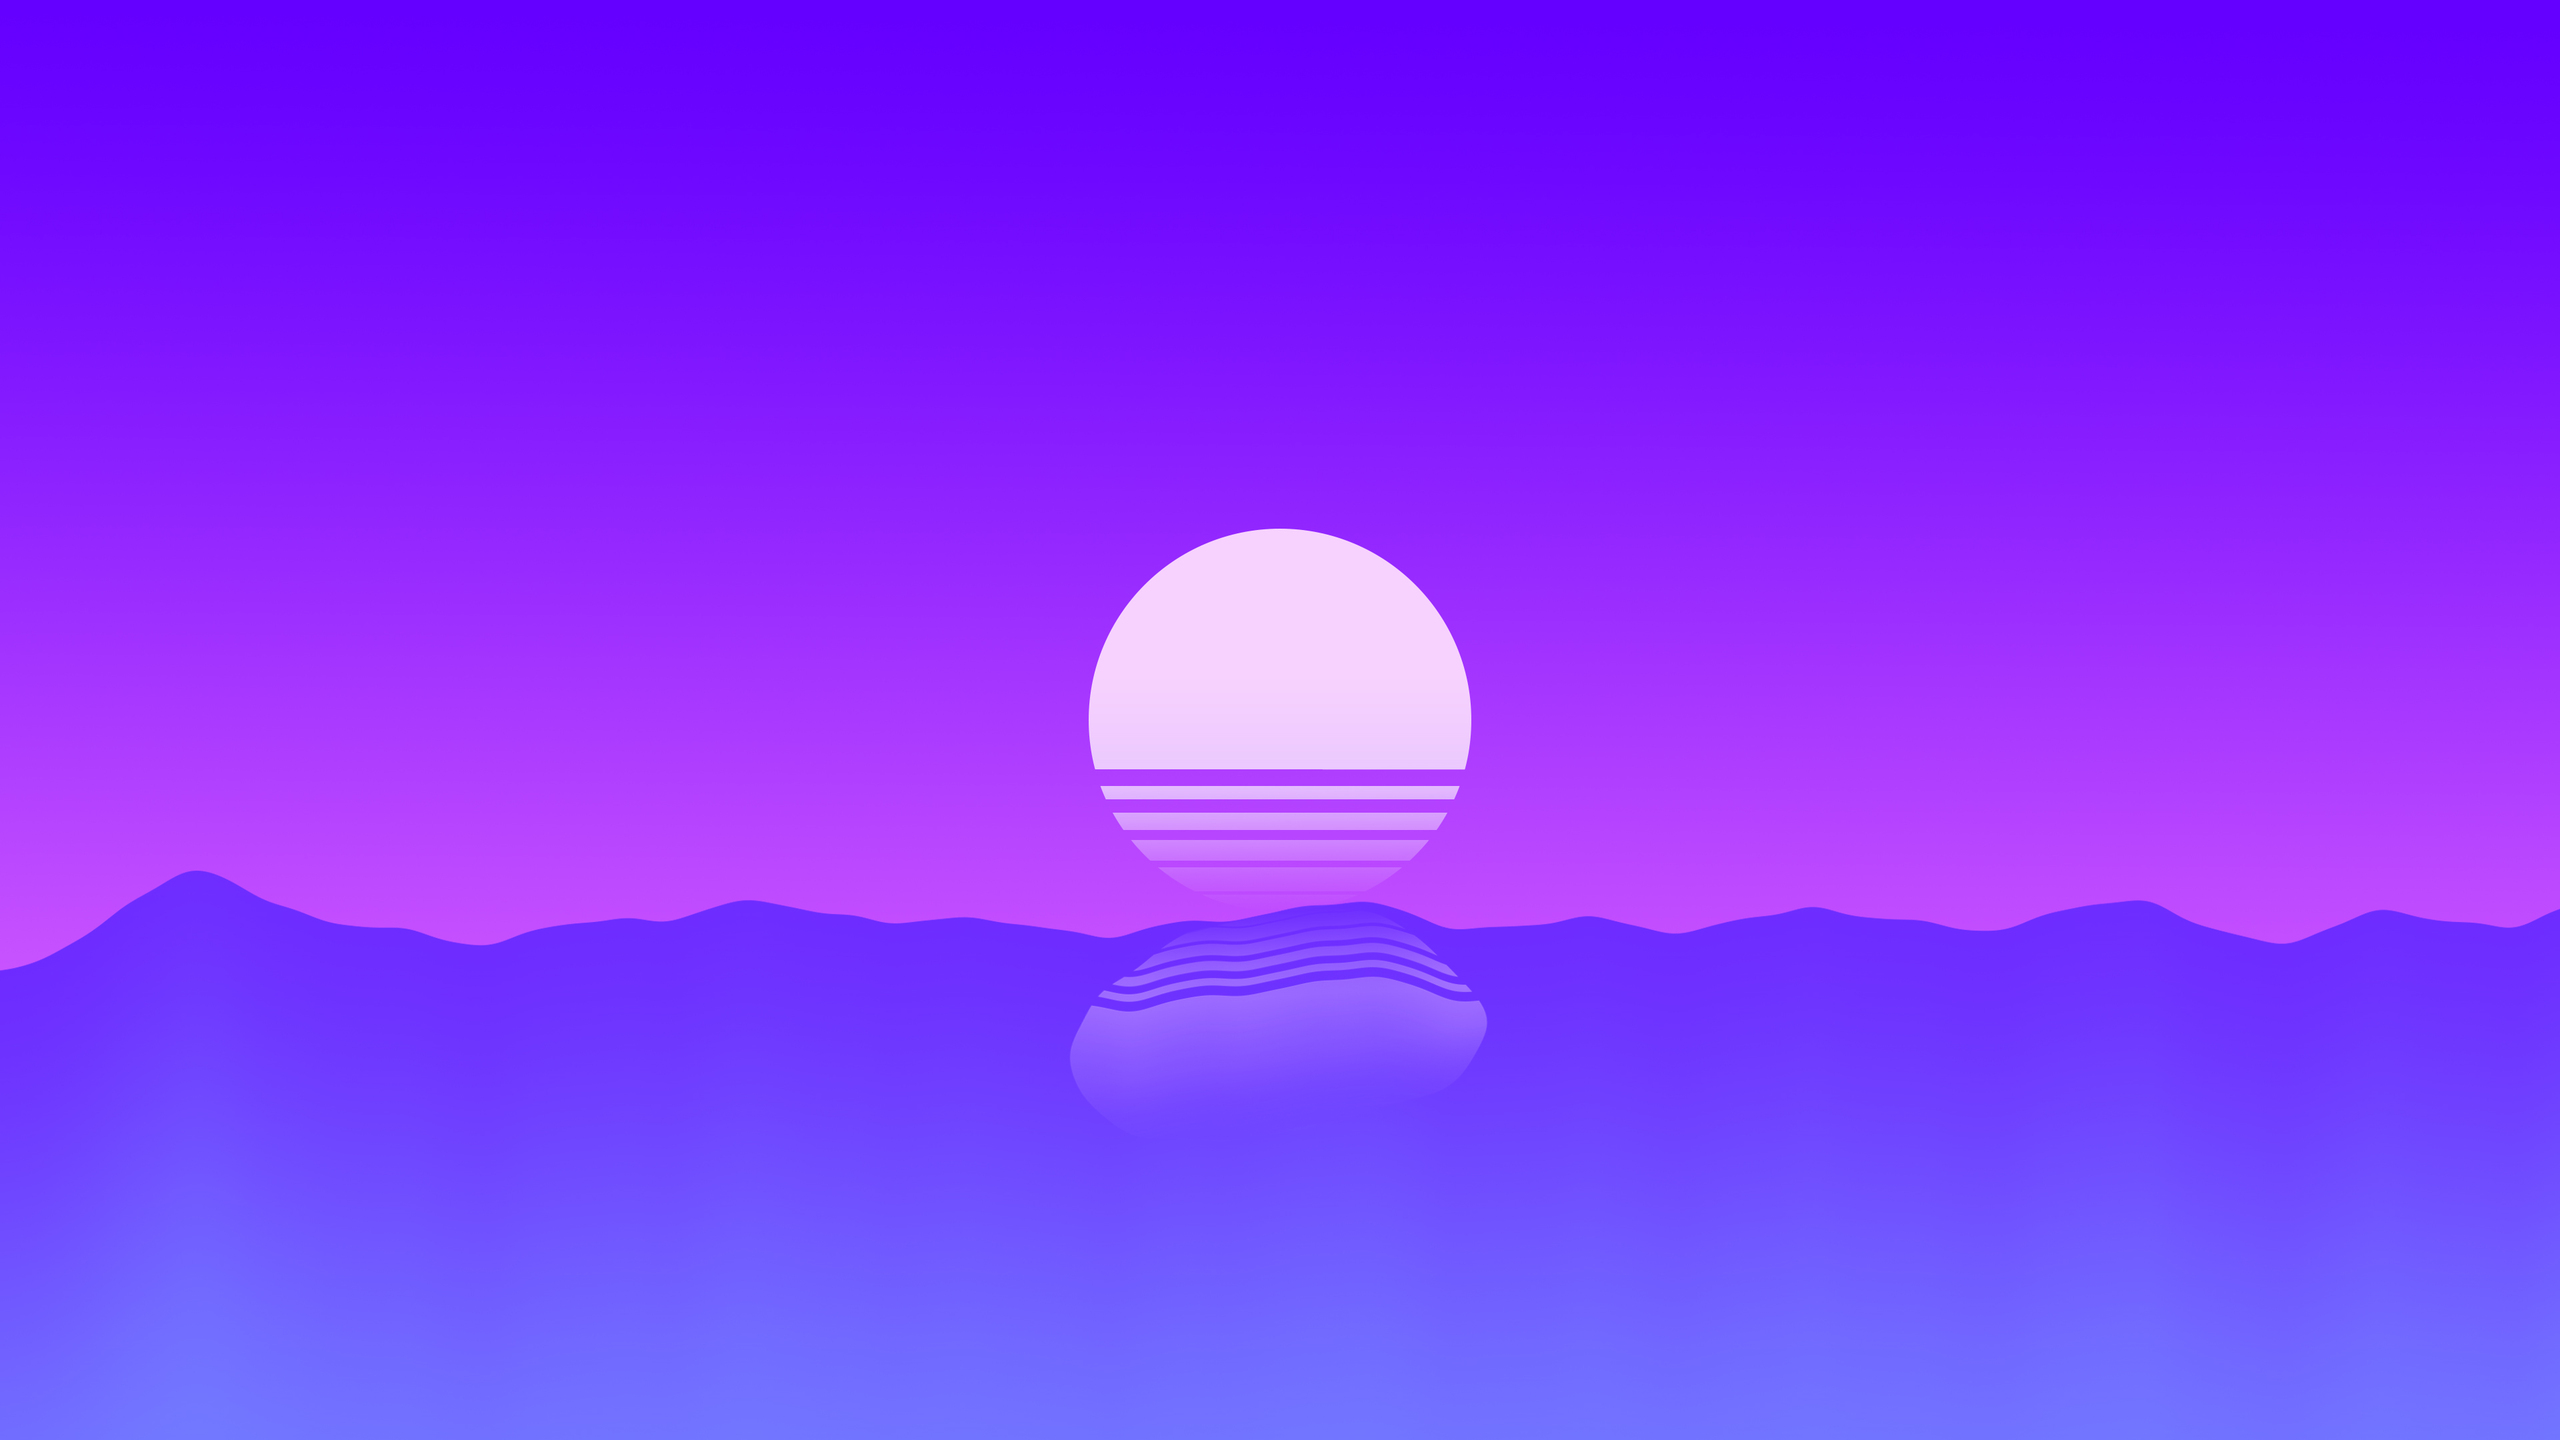 2560x1440 Sunset Outrun Minimalism 4k 1440p Resolution Hd 4k Wallpapers Images Backgrounds Photos And Pictures